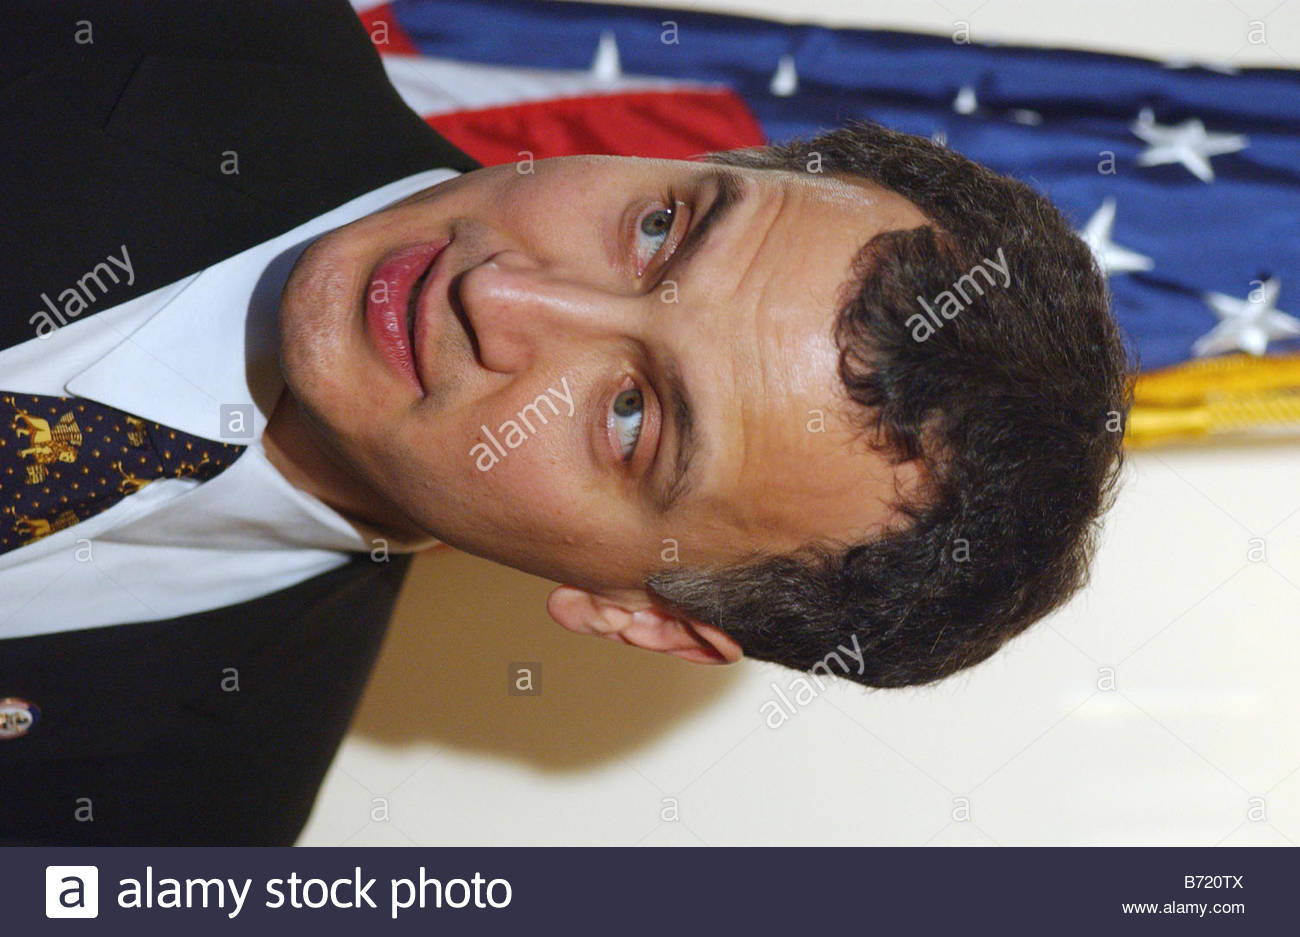 1 7 03 U S Rep Mark Kennedy R Minn during a mock swearing in with House Speaker J Dennis Hastert R Ill CONGRESSIONAL - Stock Image